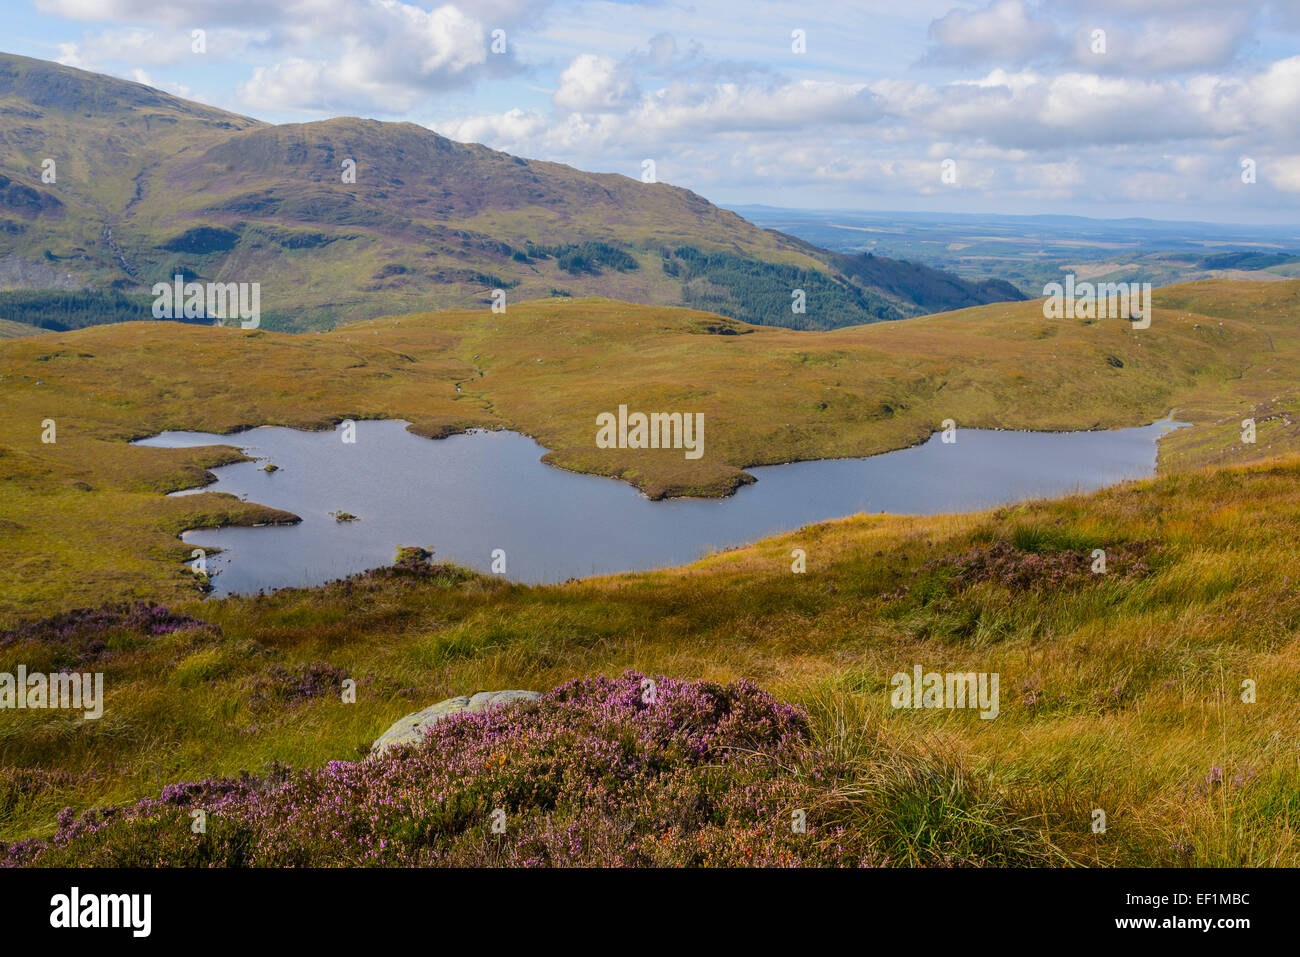 Long Loch of Glenhead from Rig of the Jarkness, Galloway Hills, Dumfries & Galloway, Scotland - Stock Image